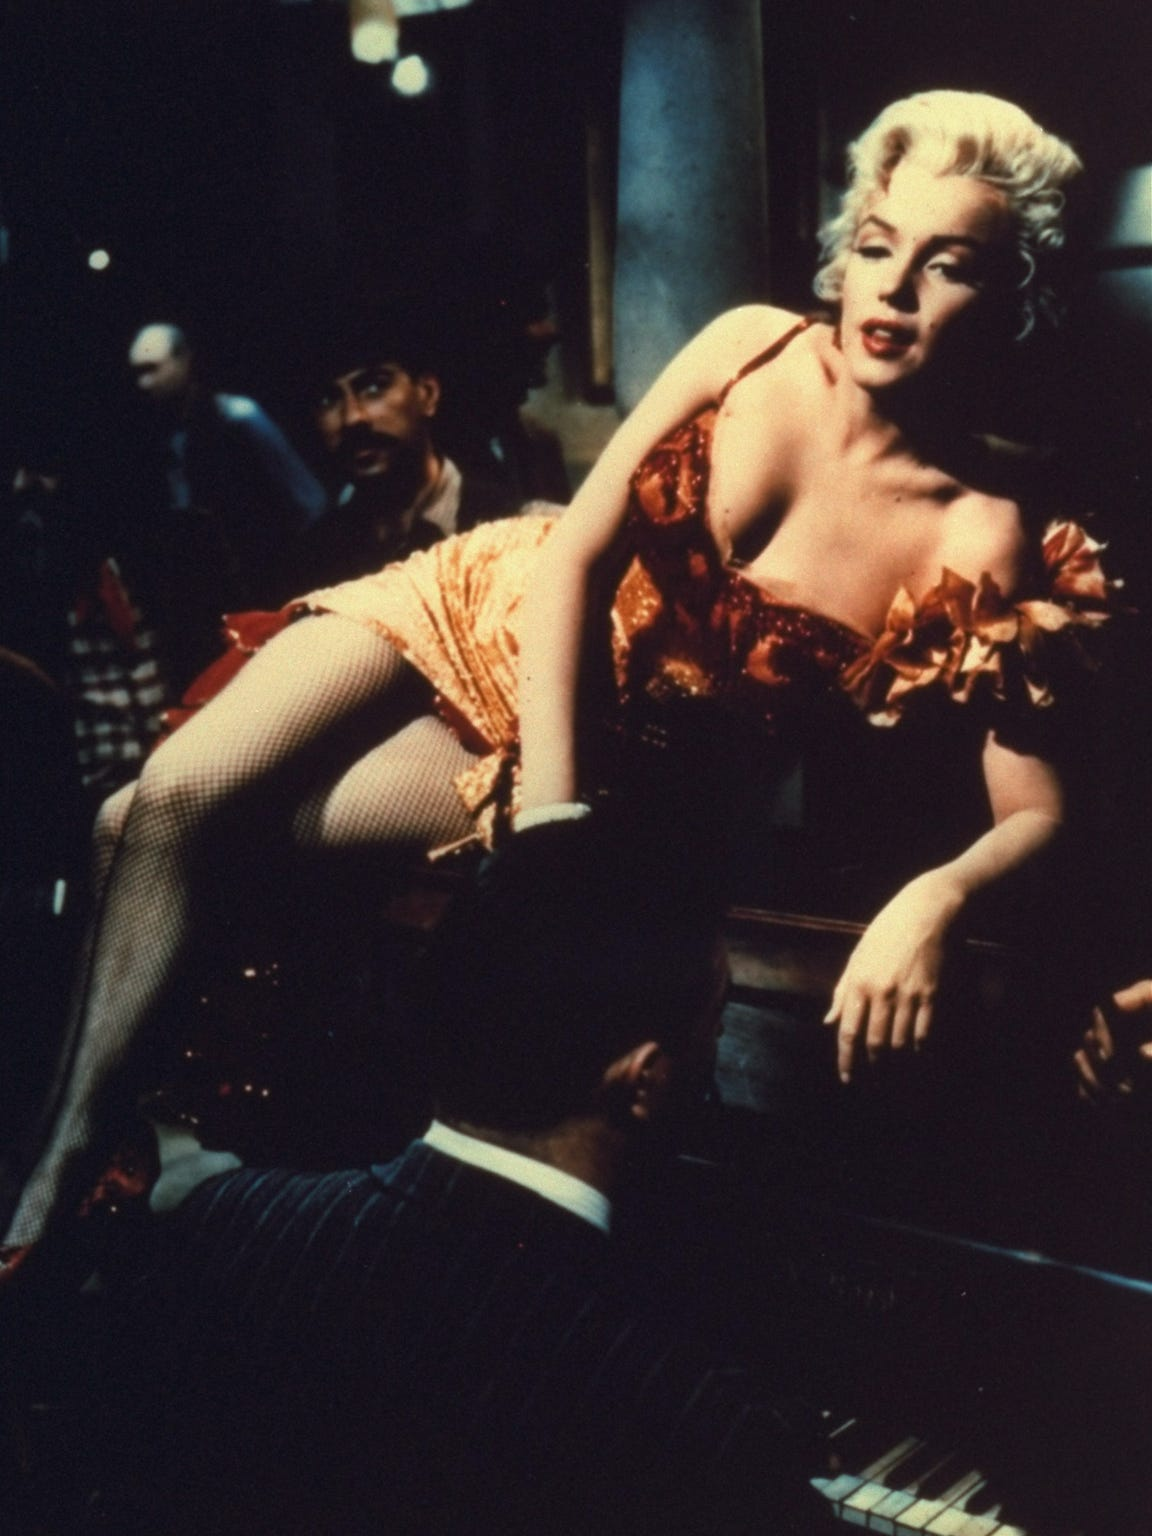 Marilyn Monroe plays a saloon entertainer in this scene